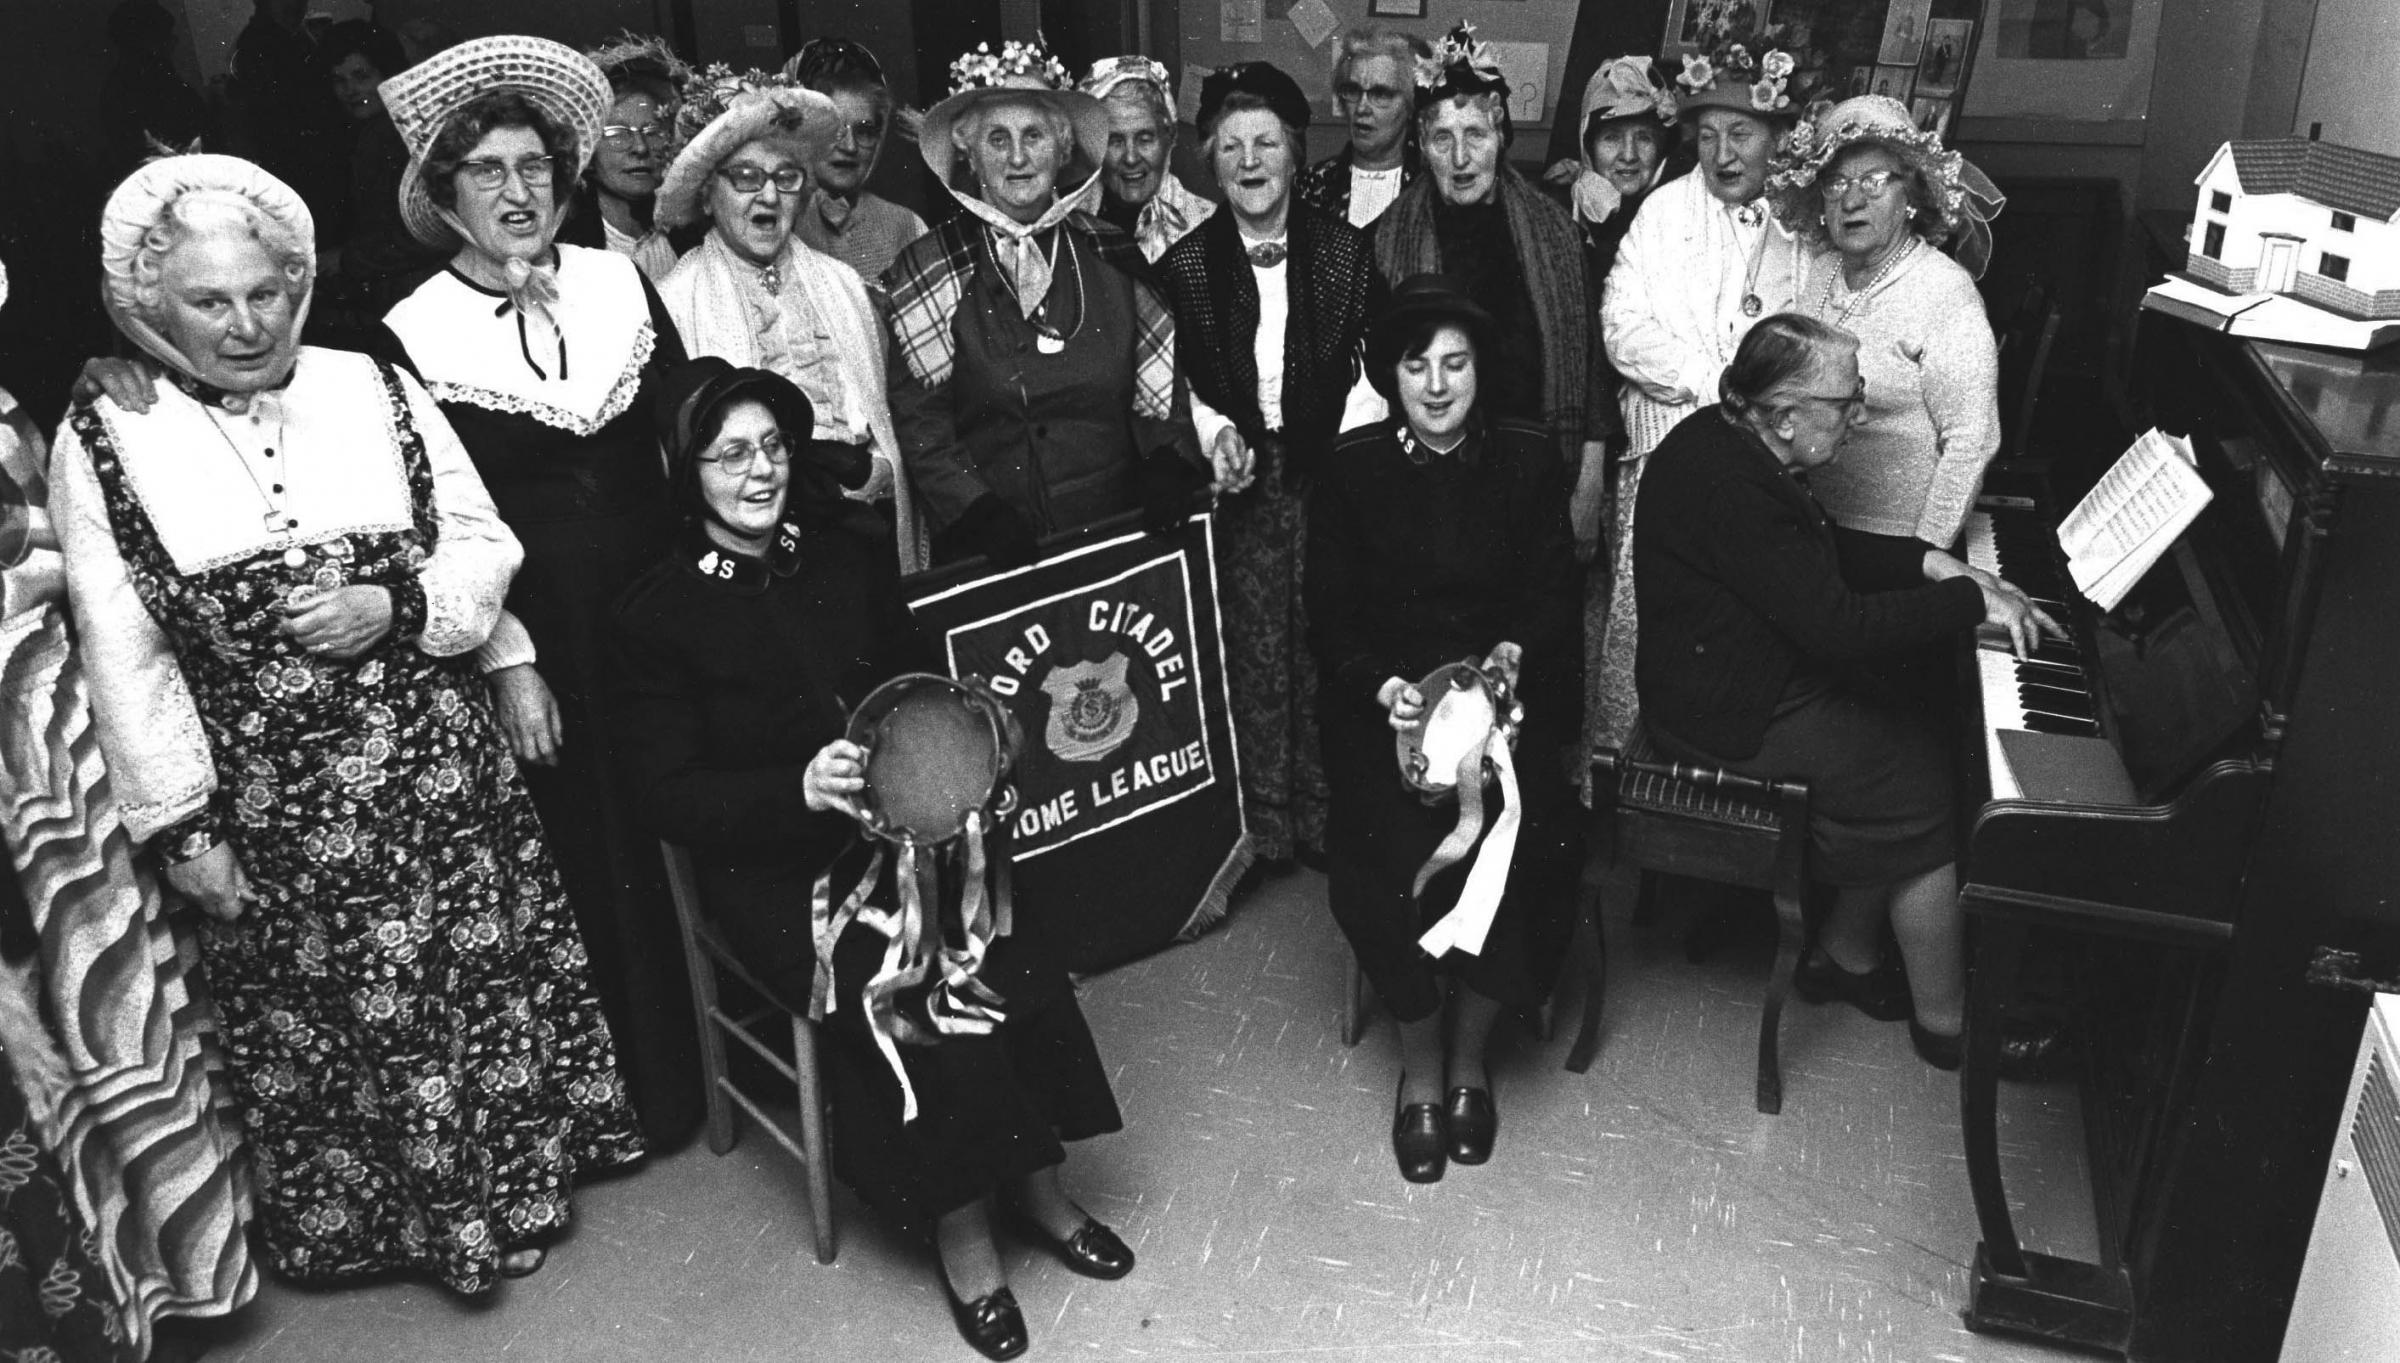 In February 1977, members of Oxford's Salvation Army Home League gathered around the piano for a sing-song to celebrate the 70th birthday of the home league